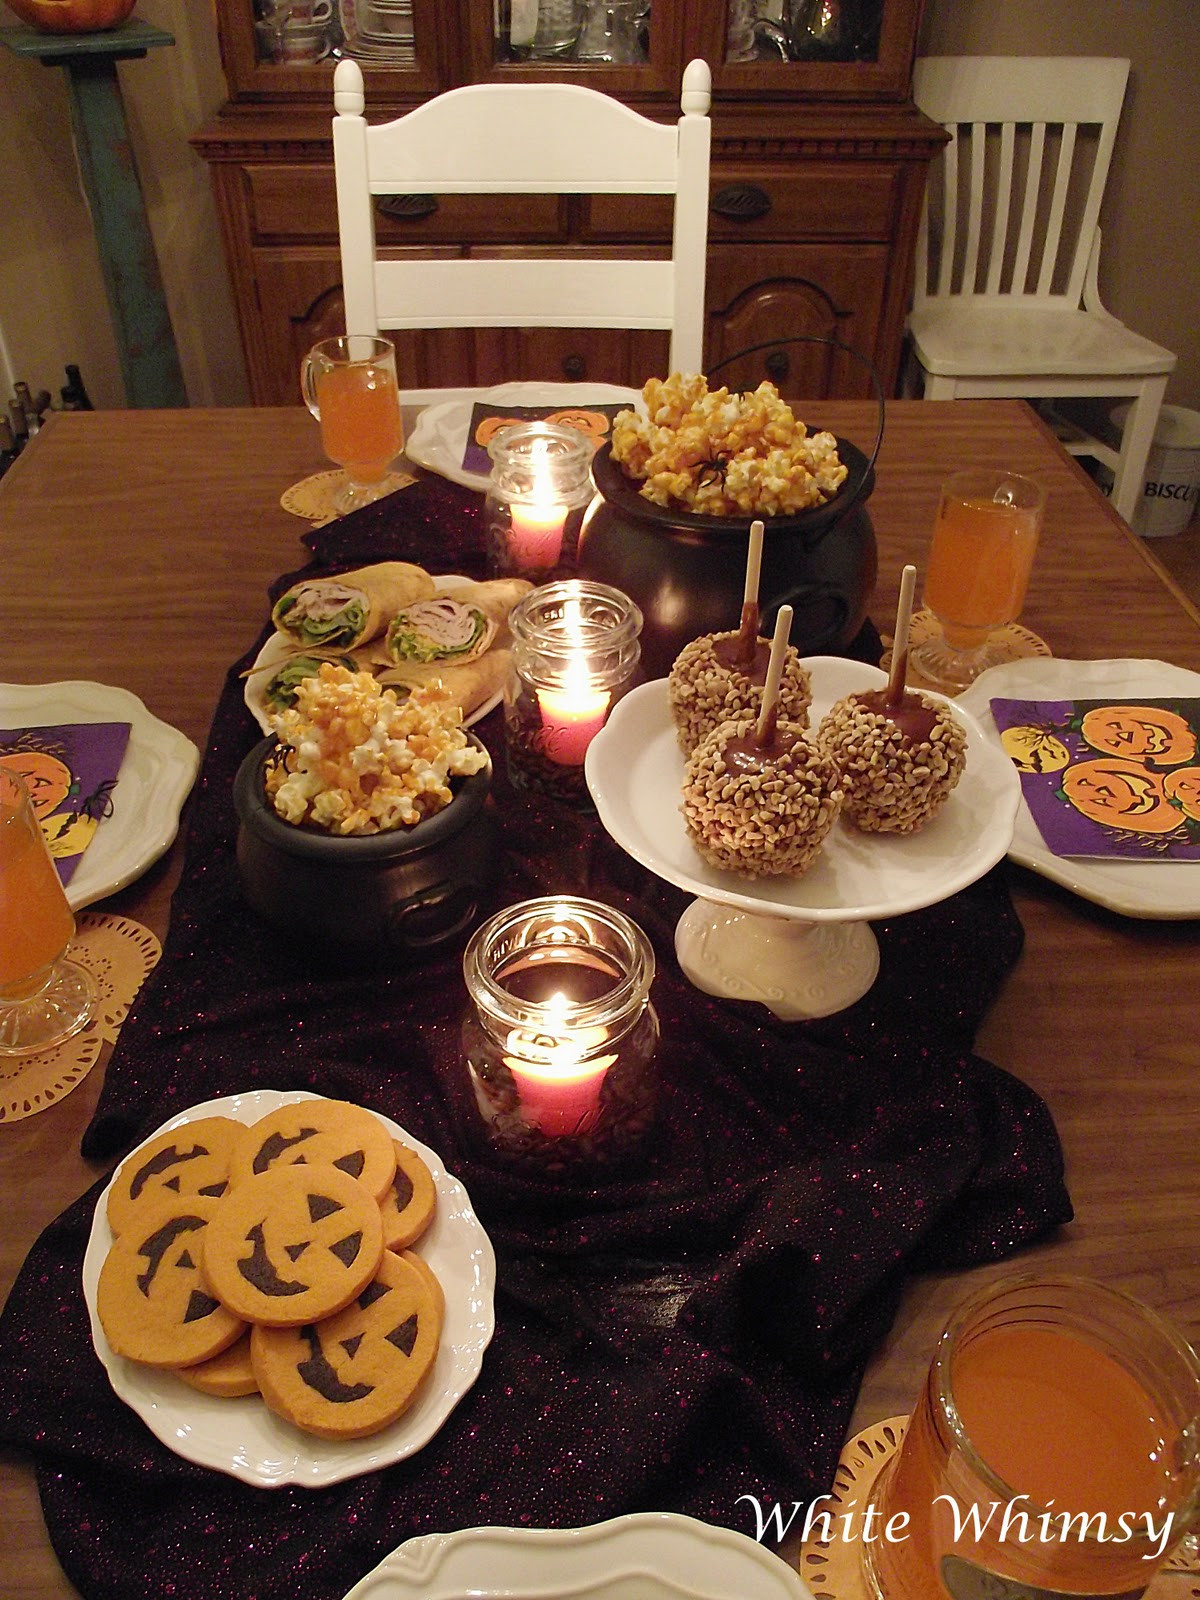 Halloween Themed Dinner  White Whimsy A Fun Halloween Meal